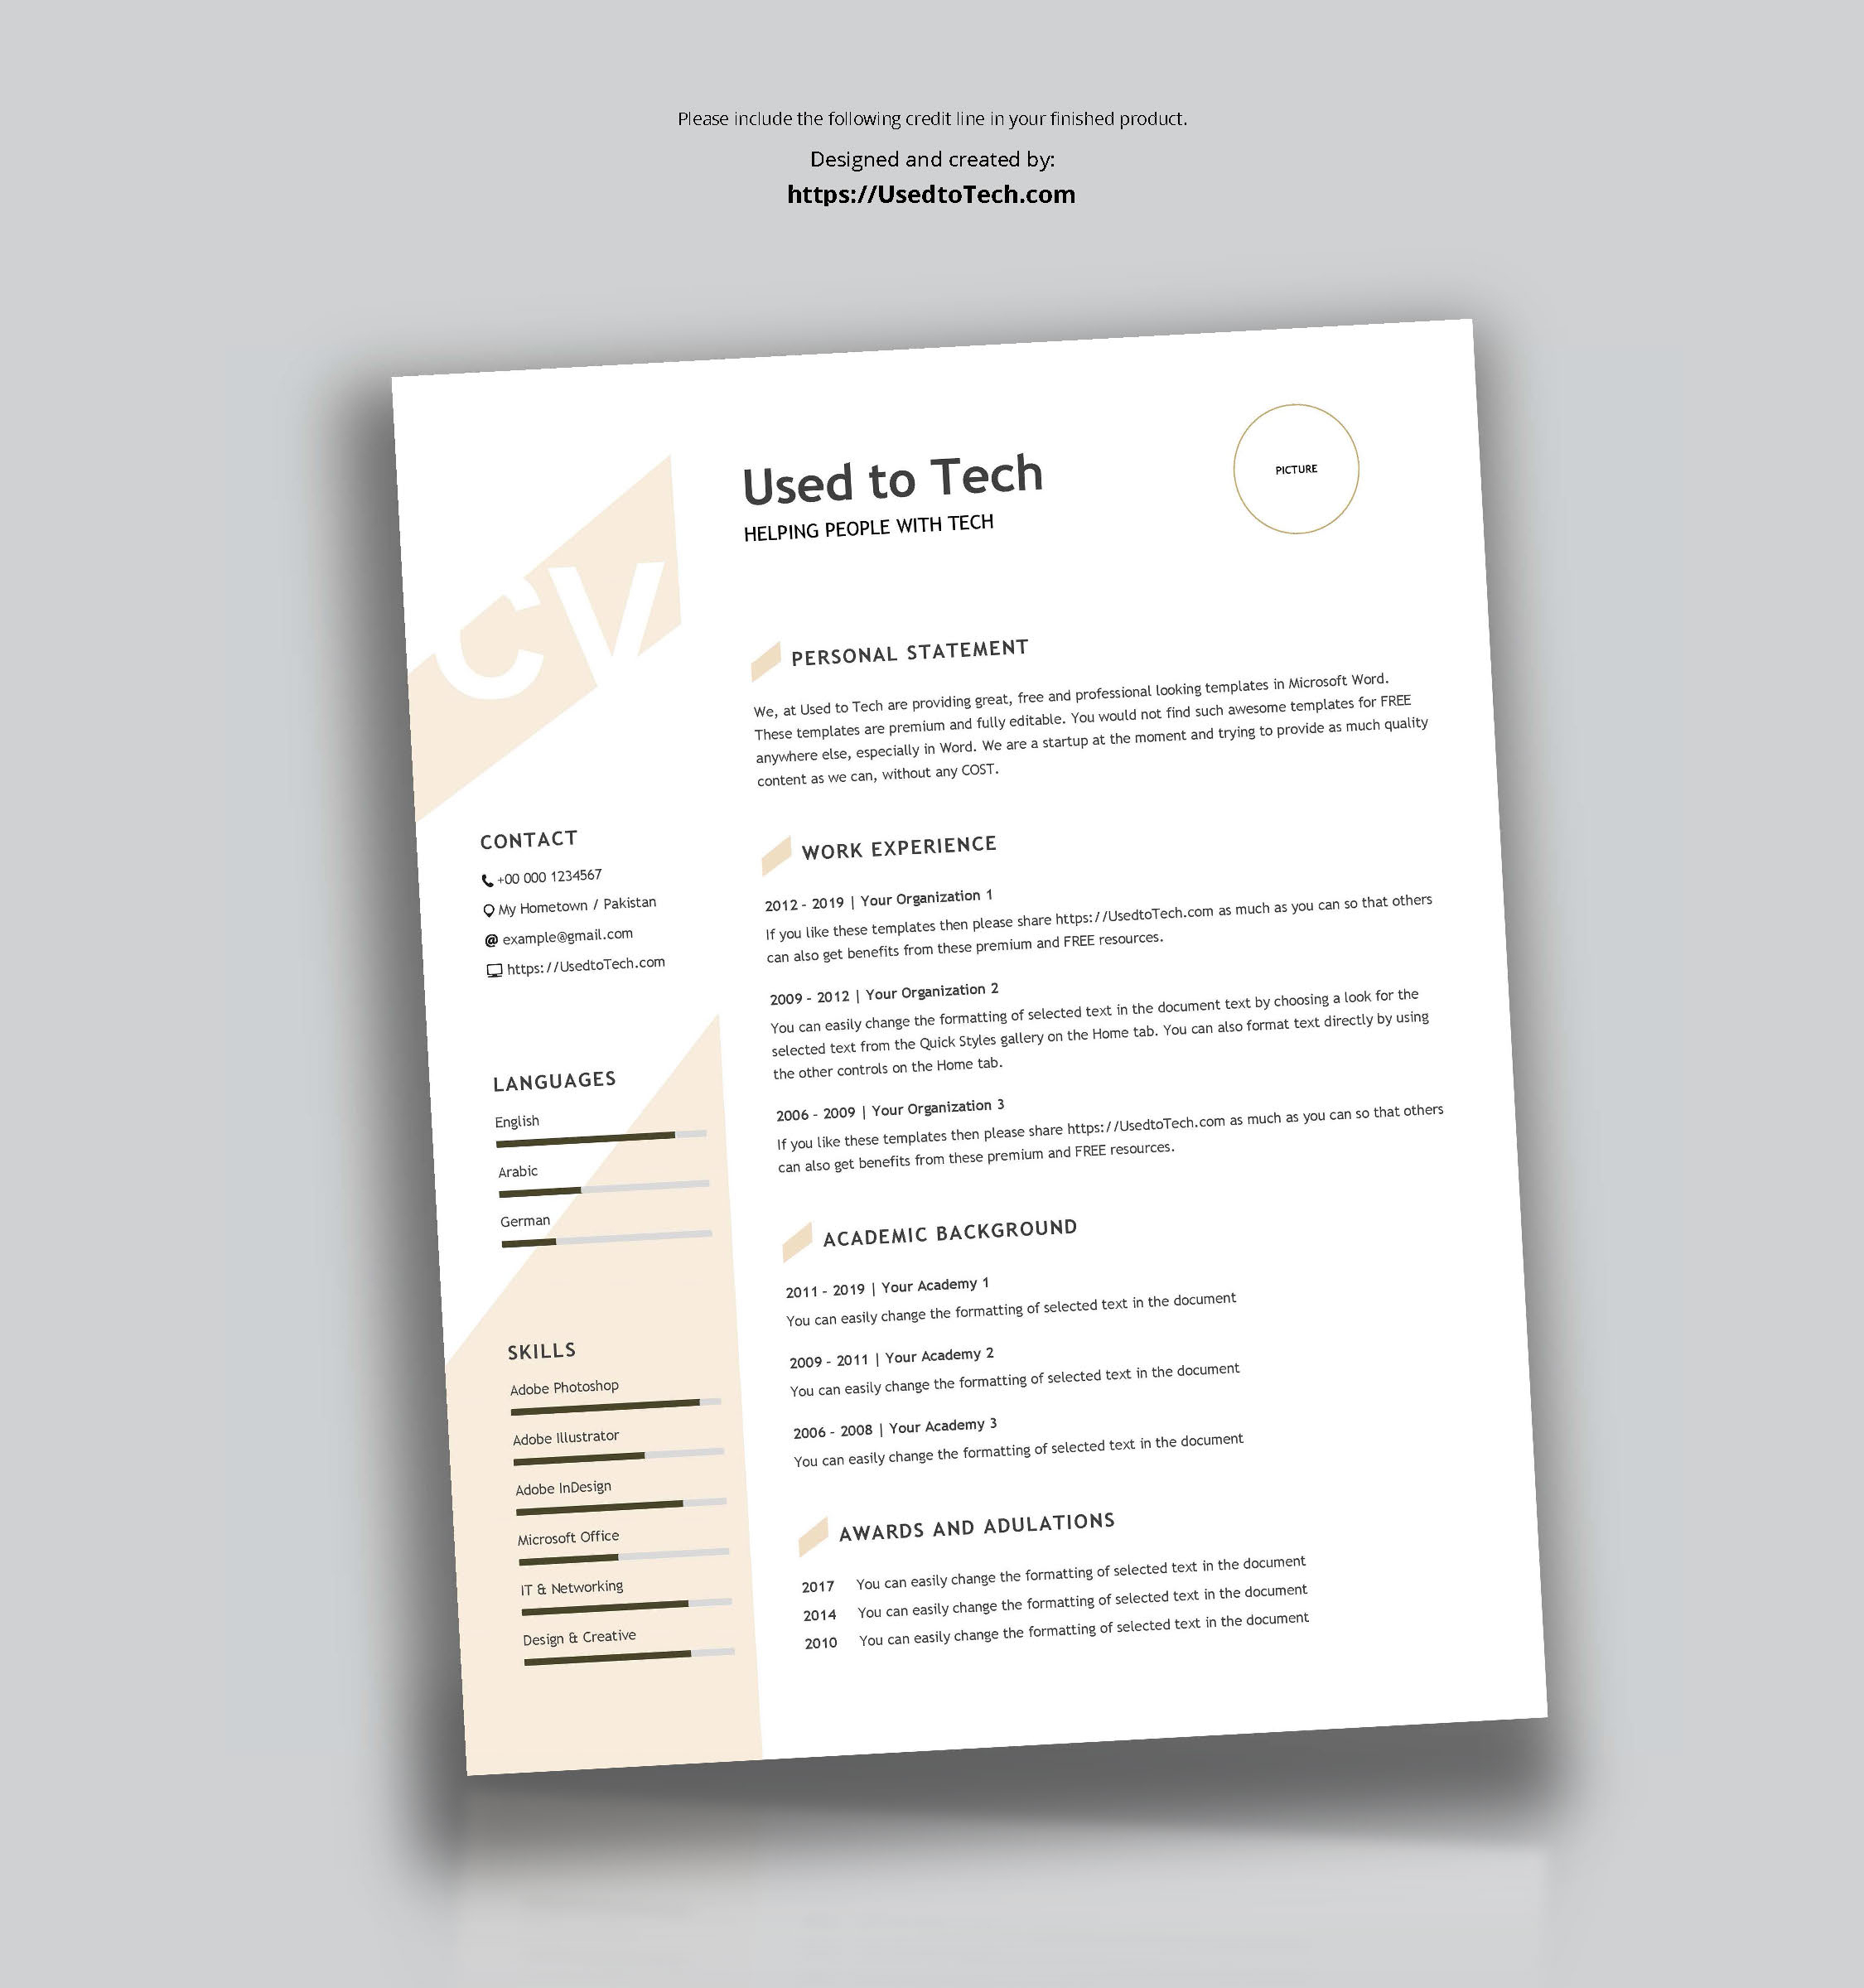 Modern Resume Template In Word Free – Used To Tech Within Resume Templates Word 2010